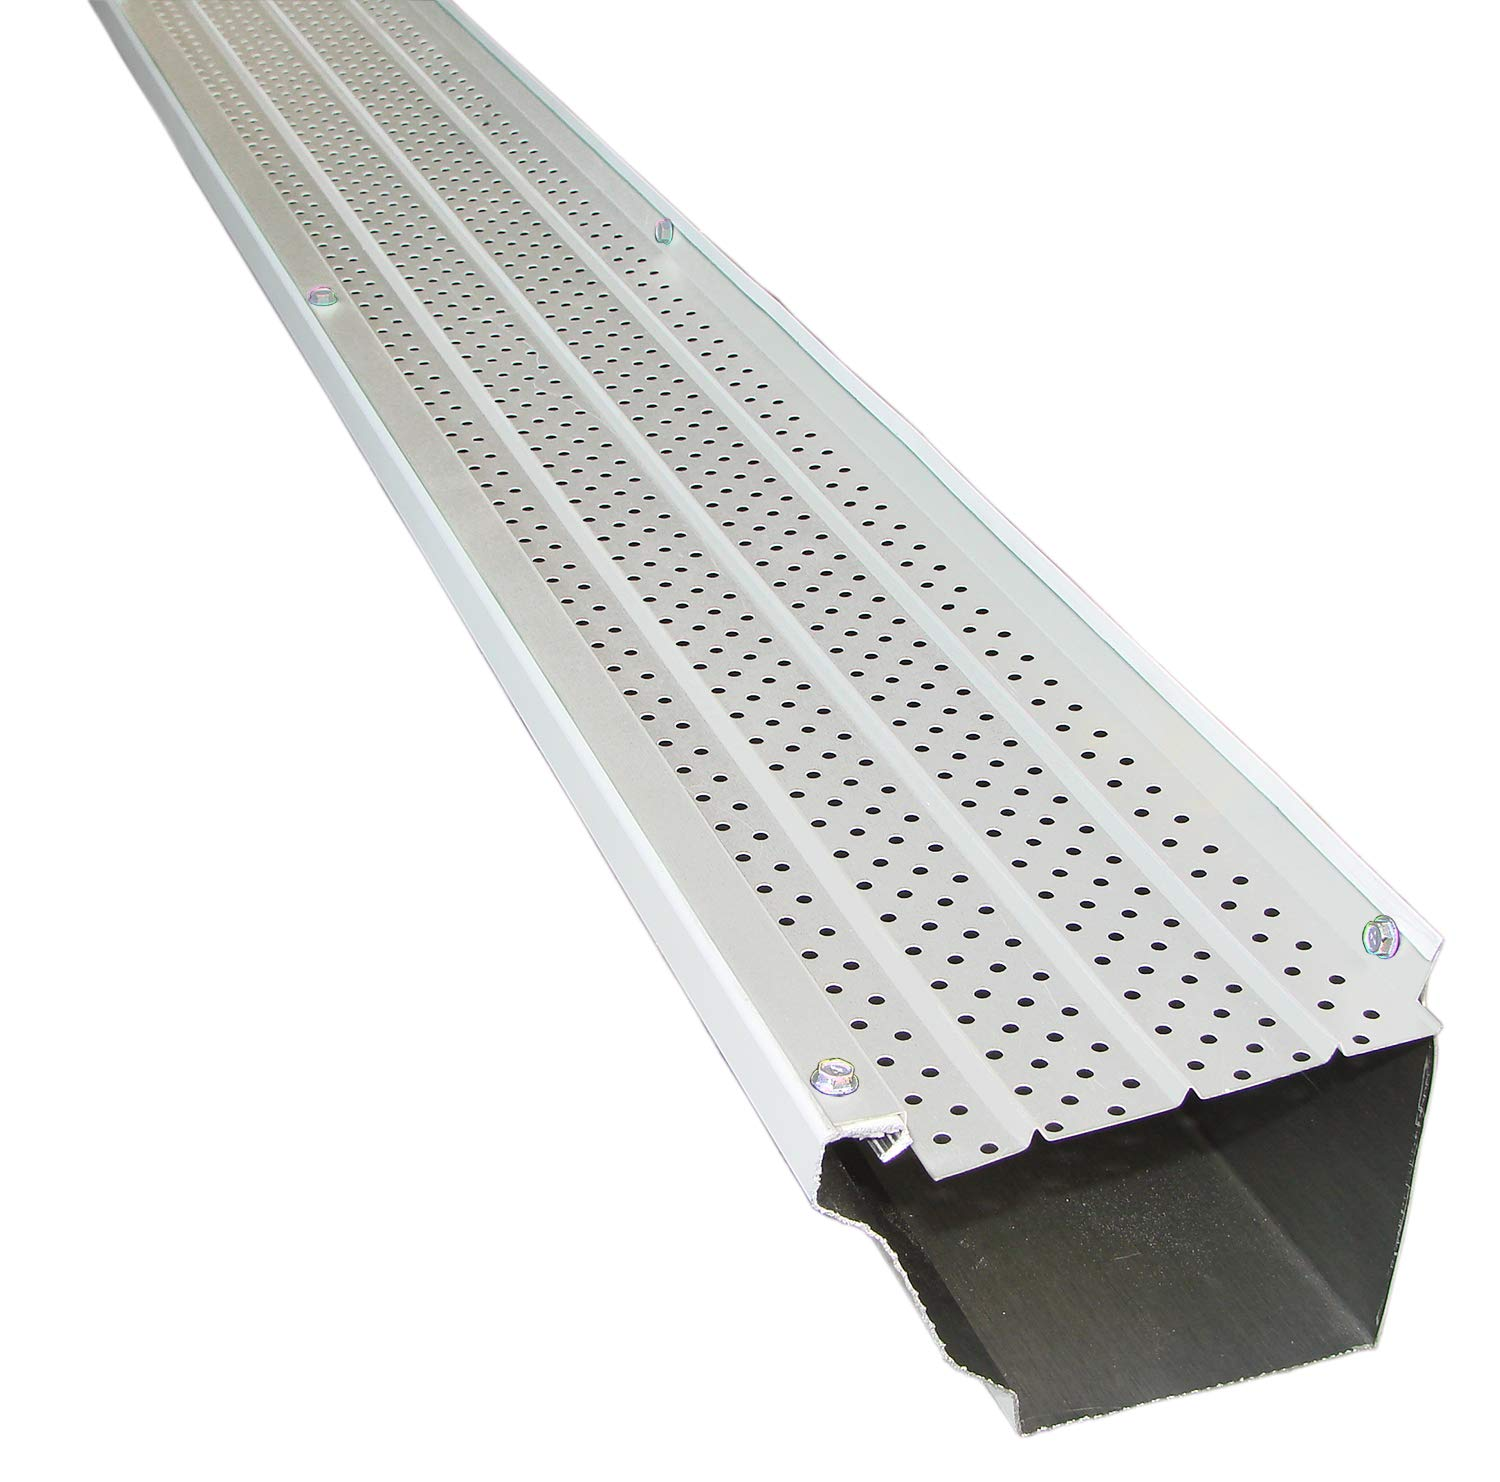 FlexxPoint 30 Year Gutter Cover System, White Commercial 6'' Gutter Guards, 102' by FLEXXPOINT